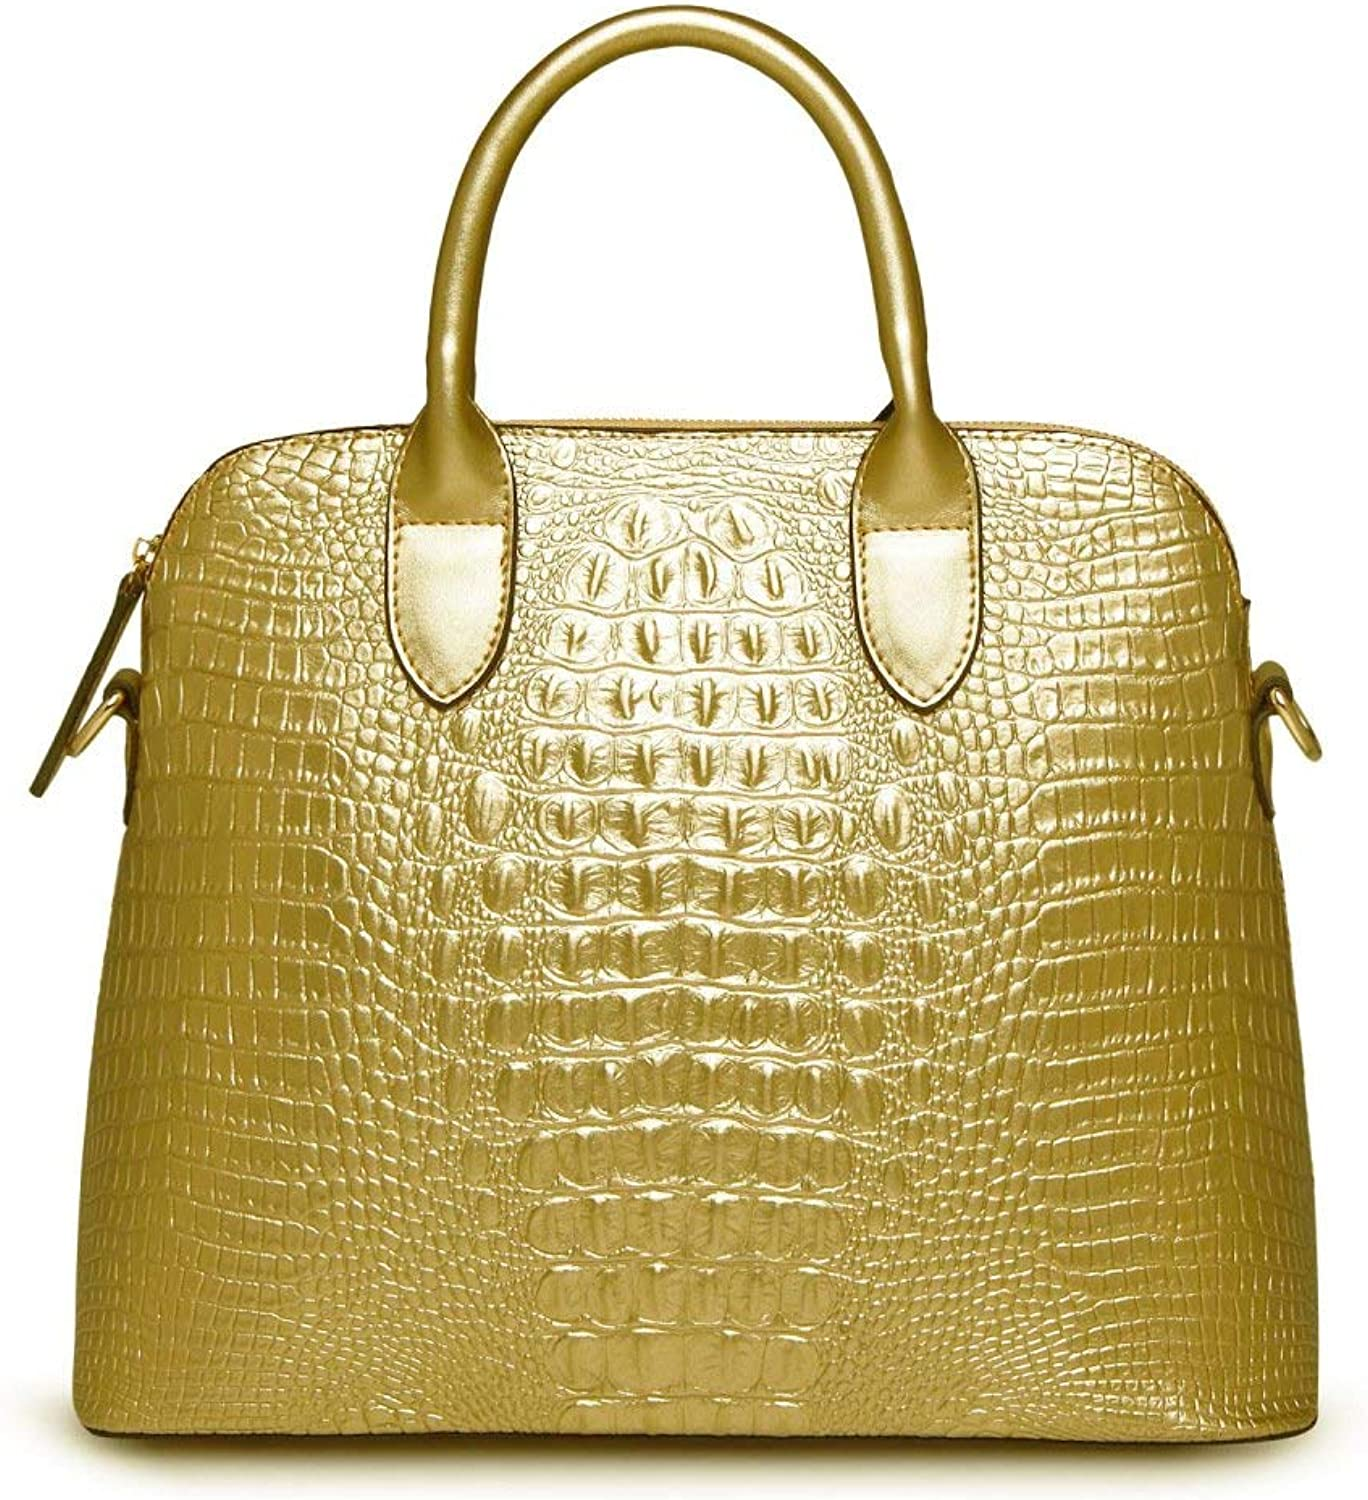 Ladies Handbag Shoulder Bag Long Strap Handbag Simple Crocodile Pattern Handbag Shell Bag Leather Handbag (color   gold, Size   One Size)